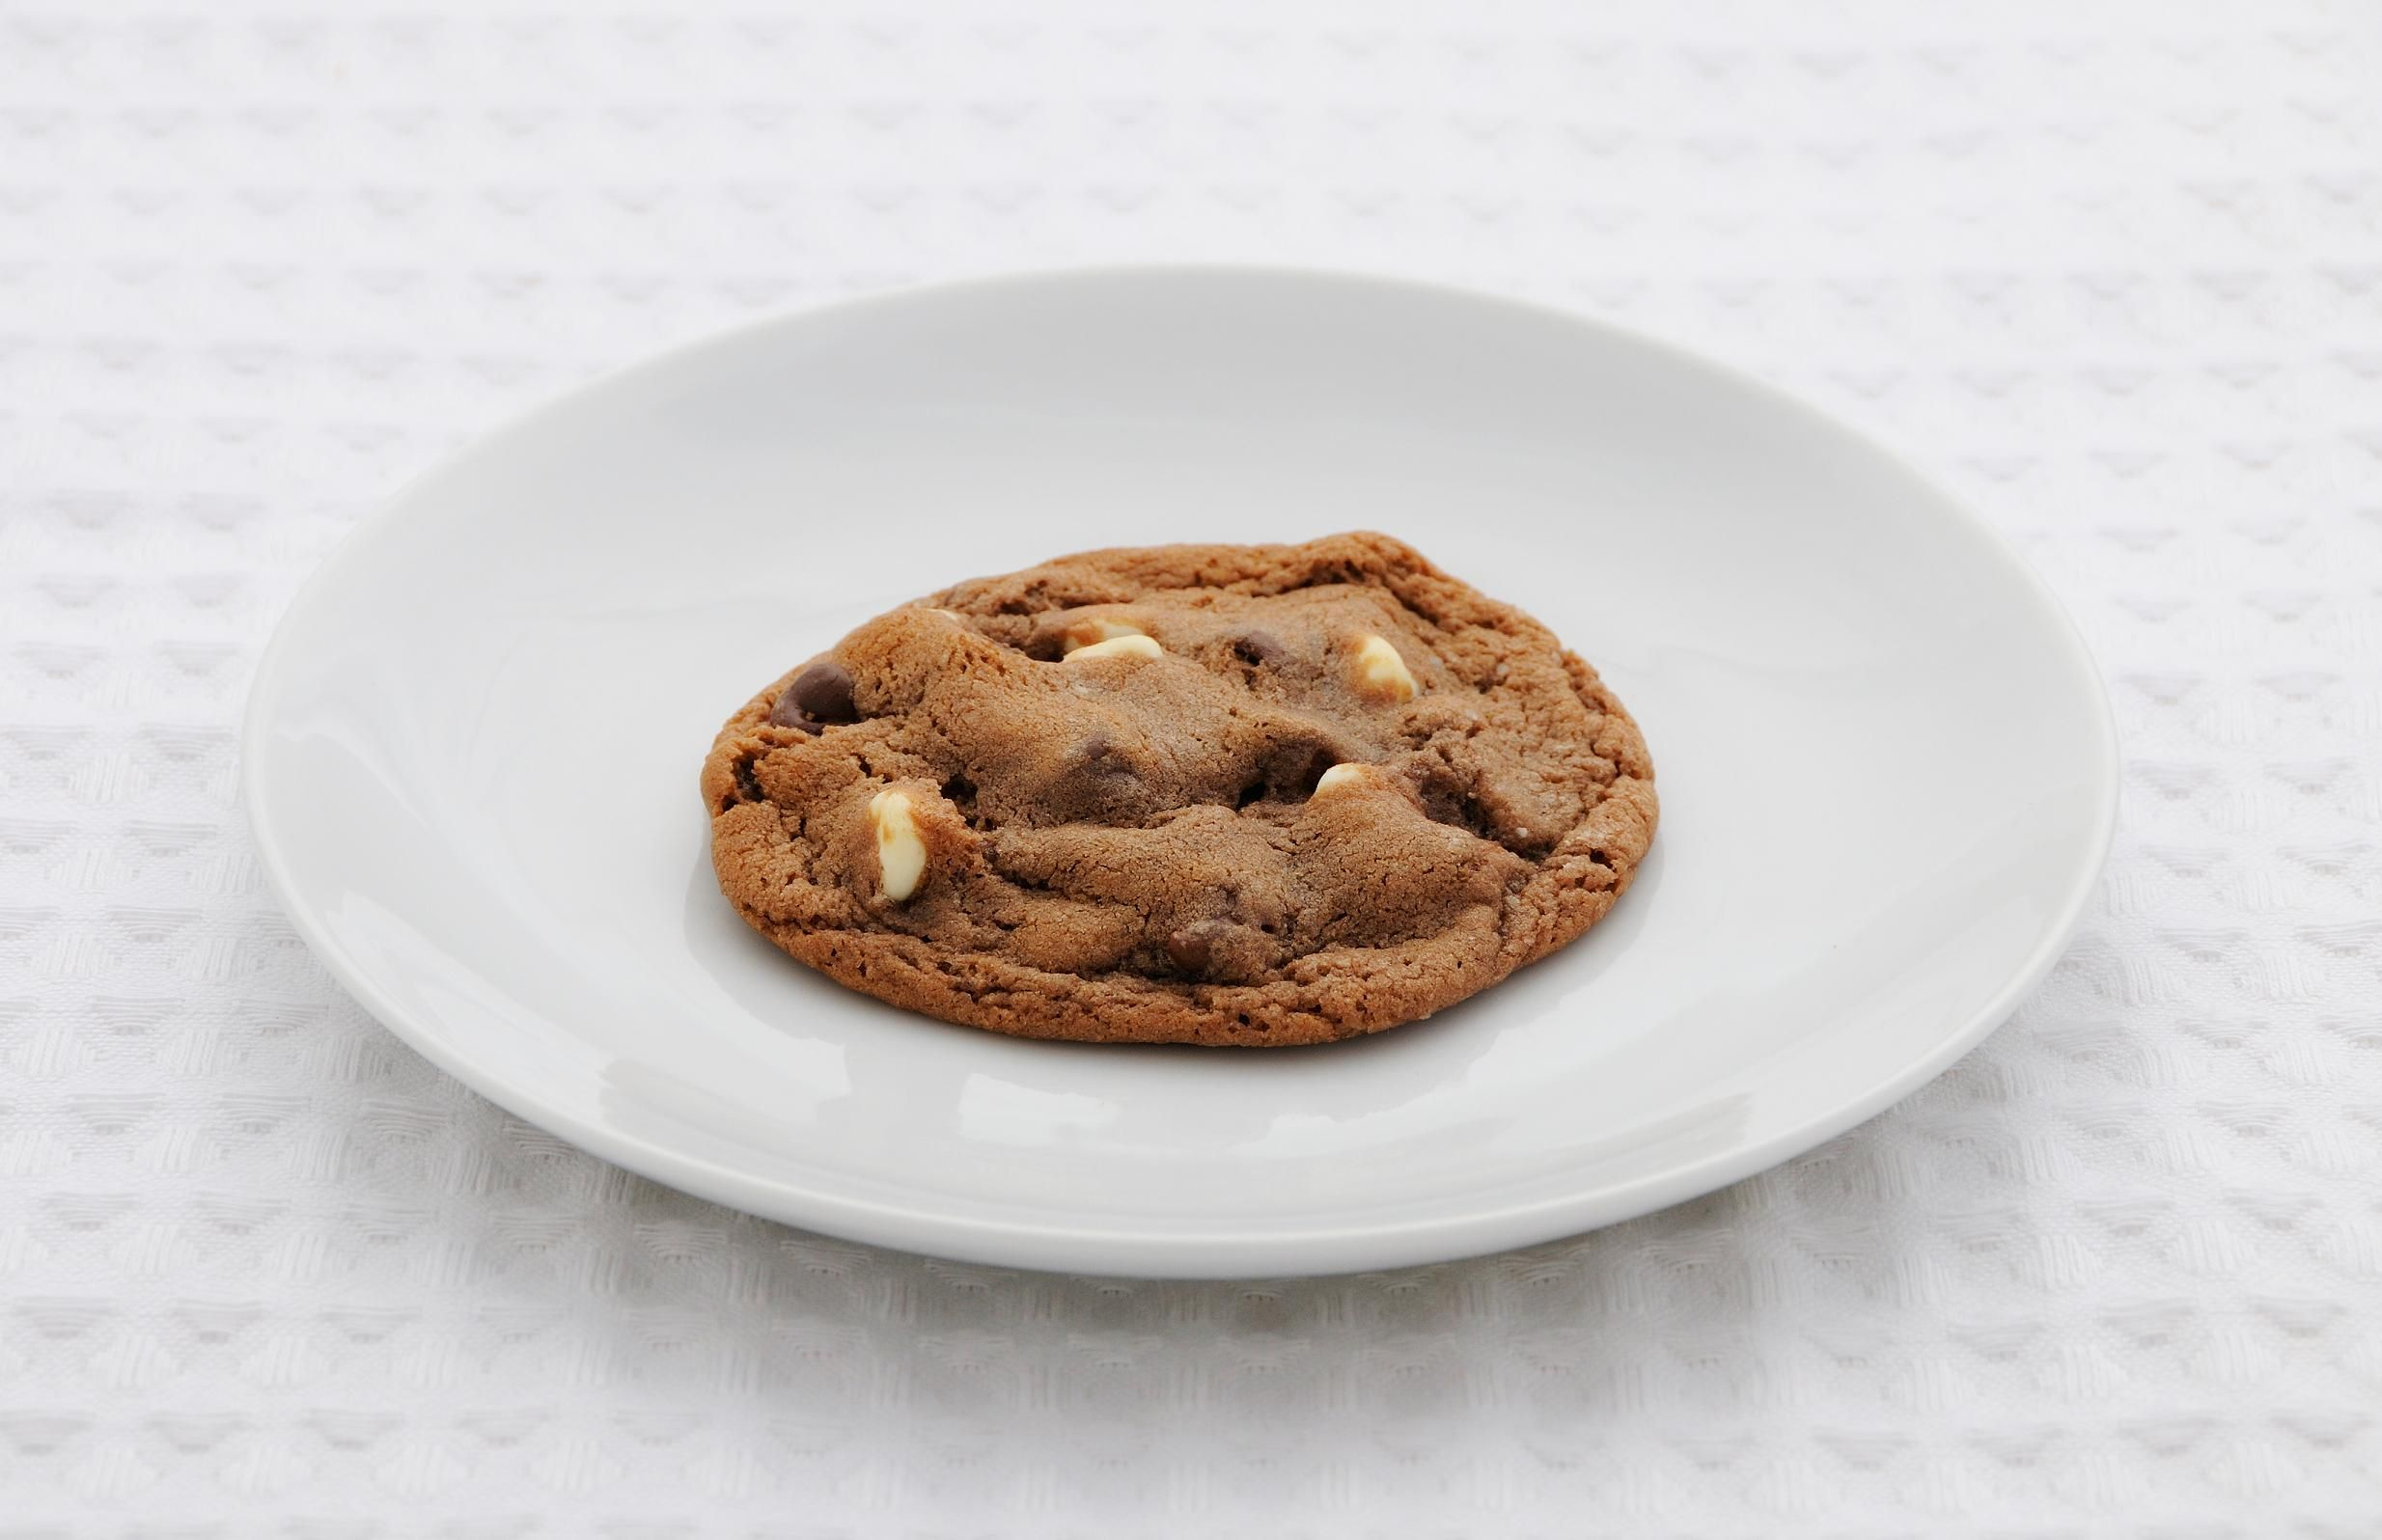 Hot Chocolate Chip Cookies - so.good.  I did 1 c. Andes baking pieces and 2/3 each cups of dark chocolate and milk chocolate pieces.